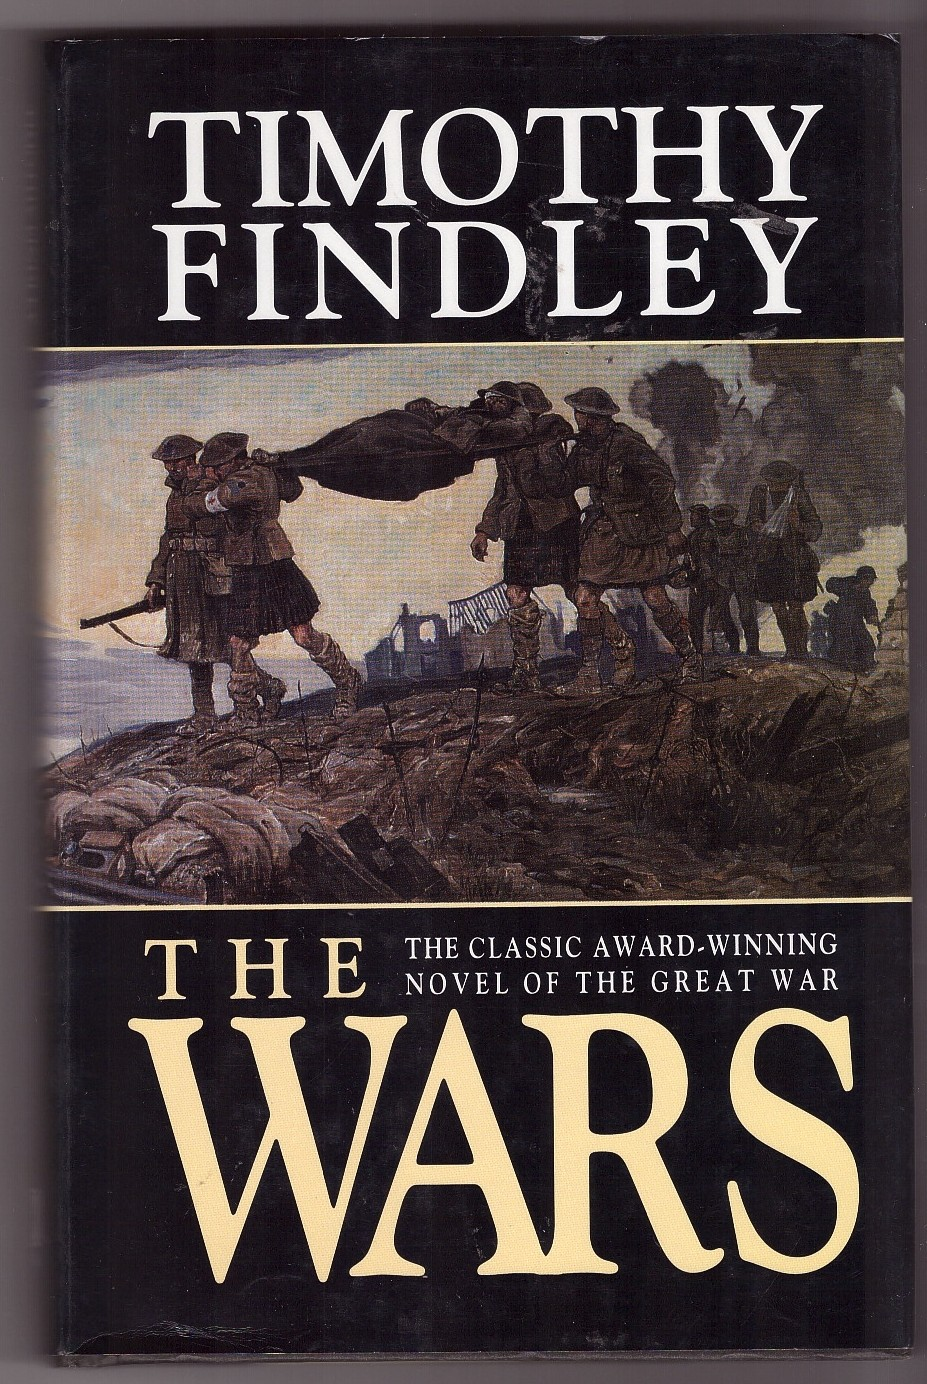 Watch Timothy Findley video